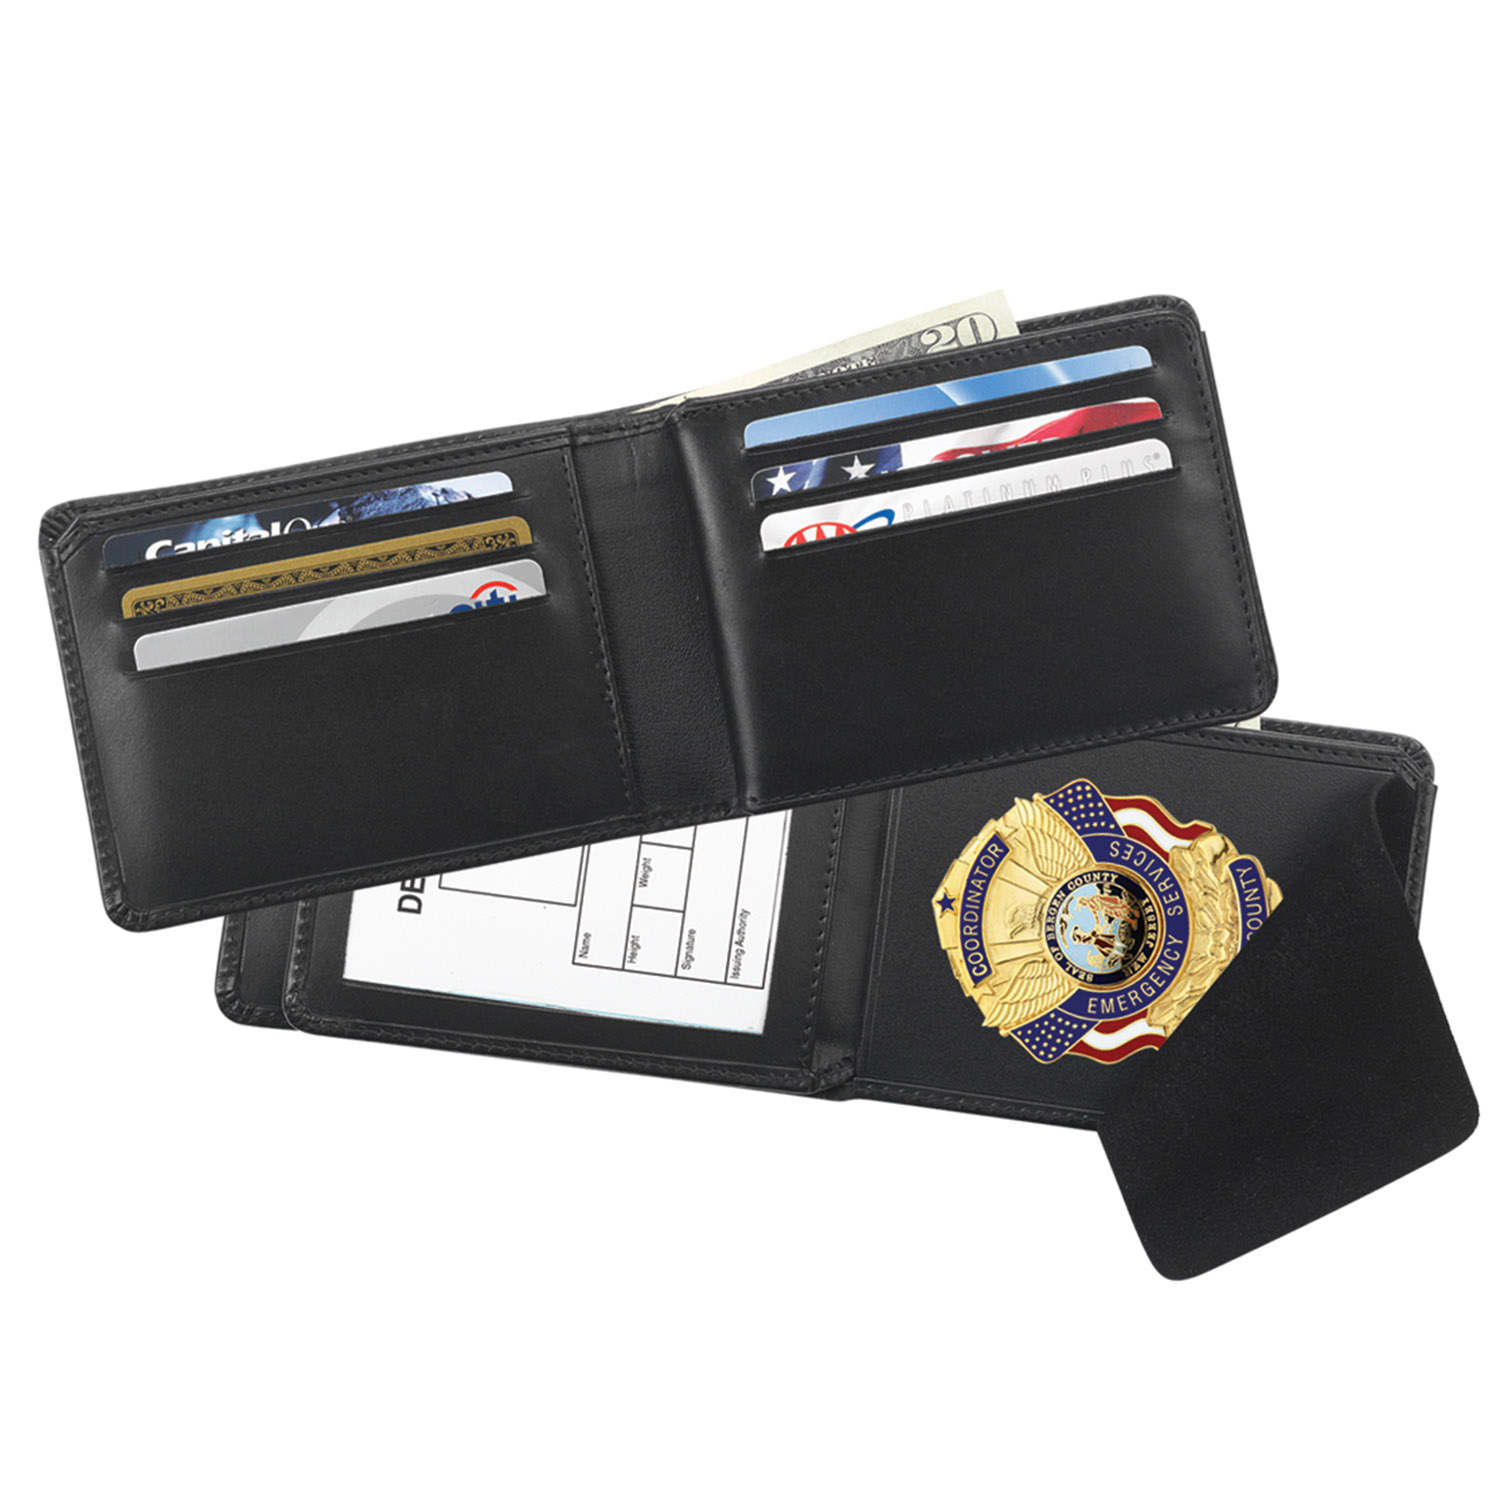 Galls Classic-Style Bi-Fold Badge Wallet